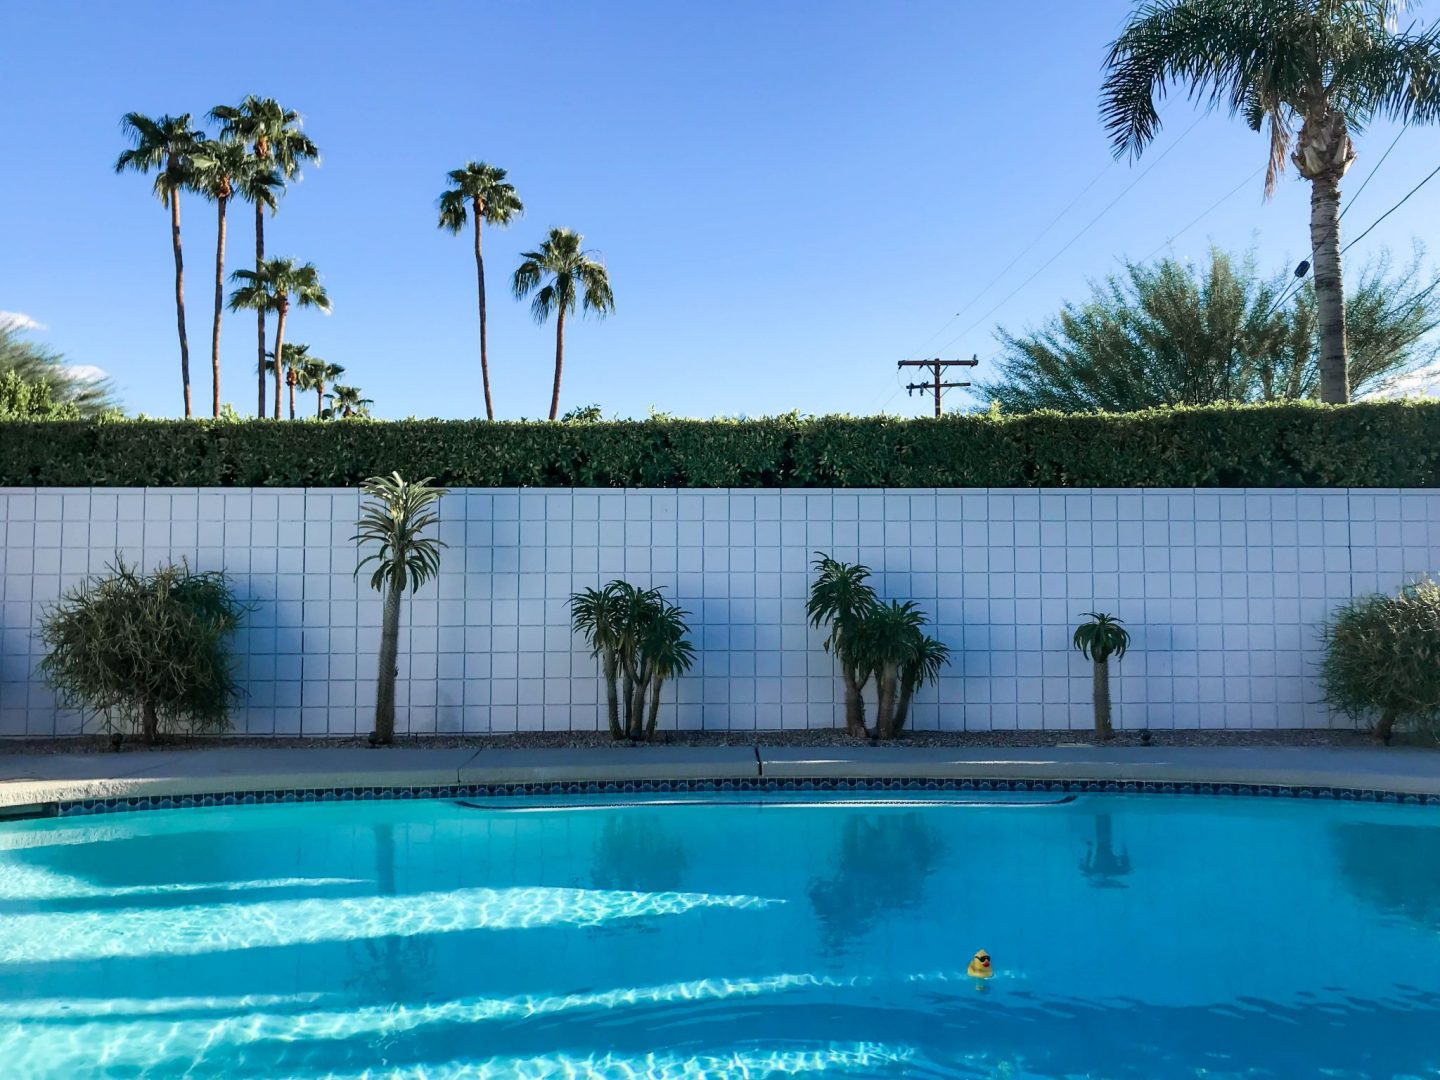 Palm Springs - Backyard Pool - Lauren Schwaiger Travel Blog